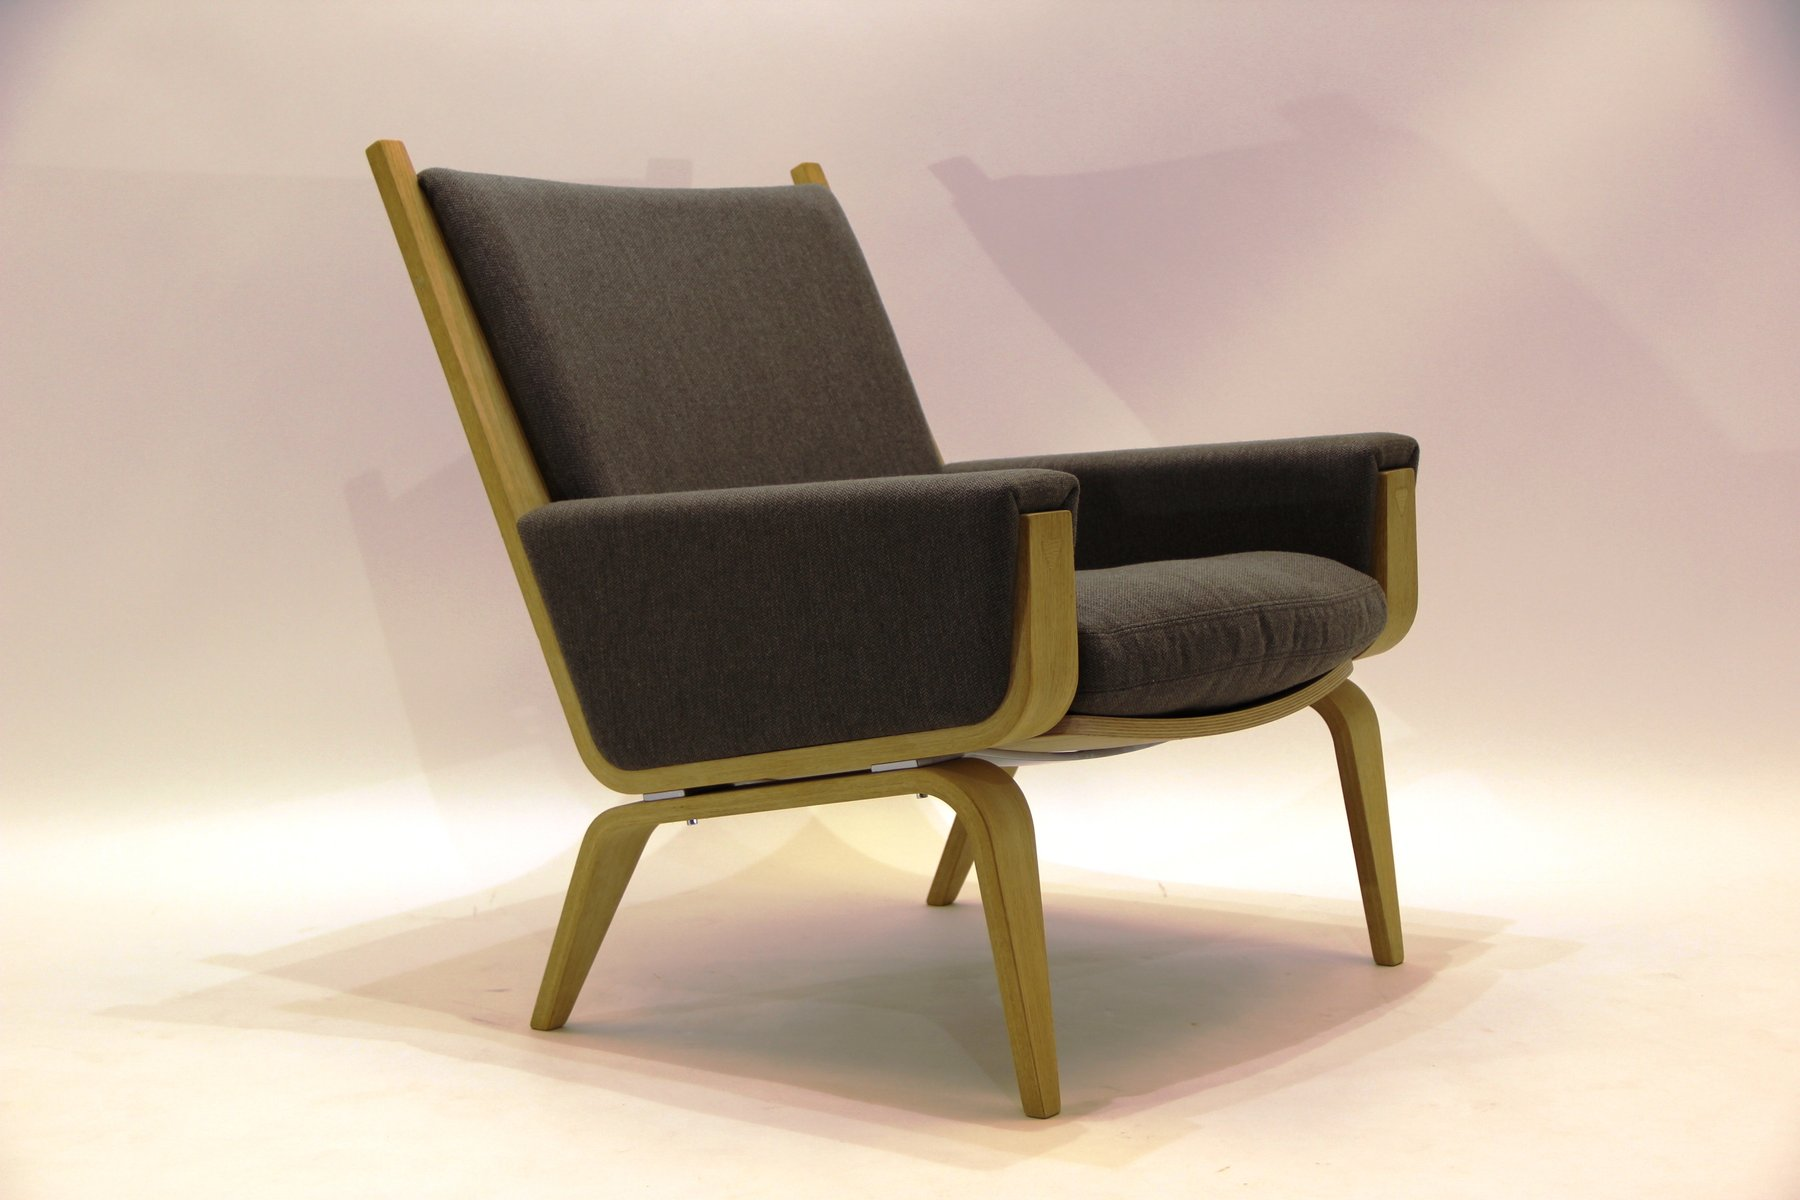 GE 501A Easy Chair by Hans J Wegner for Getama 1967 for sale at